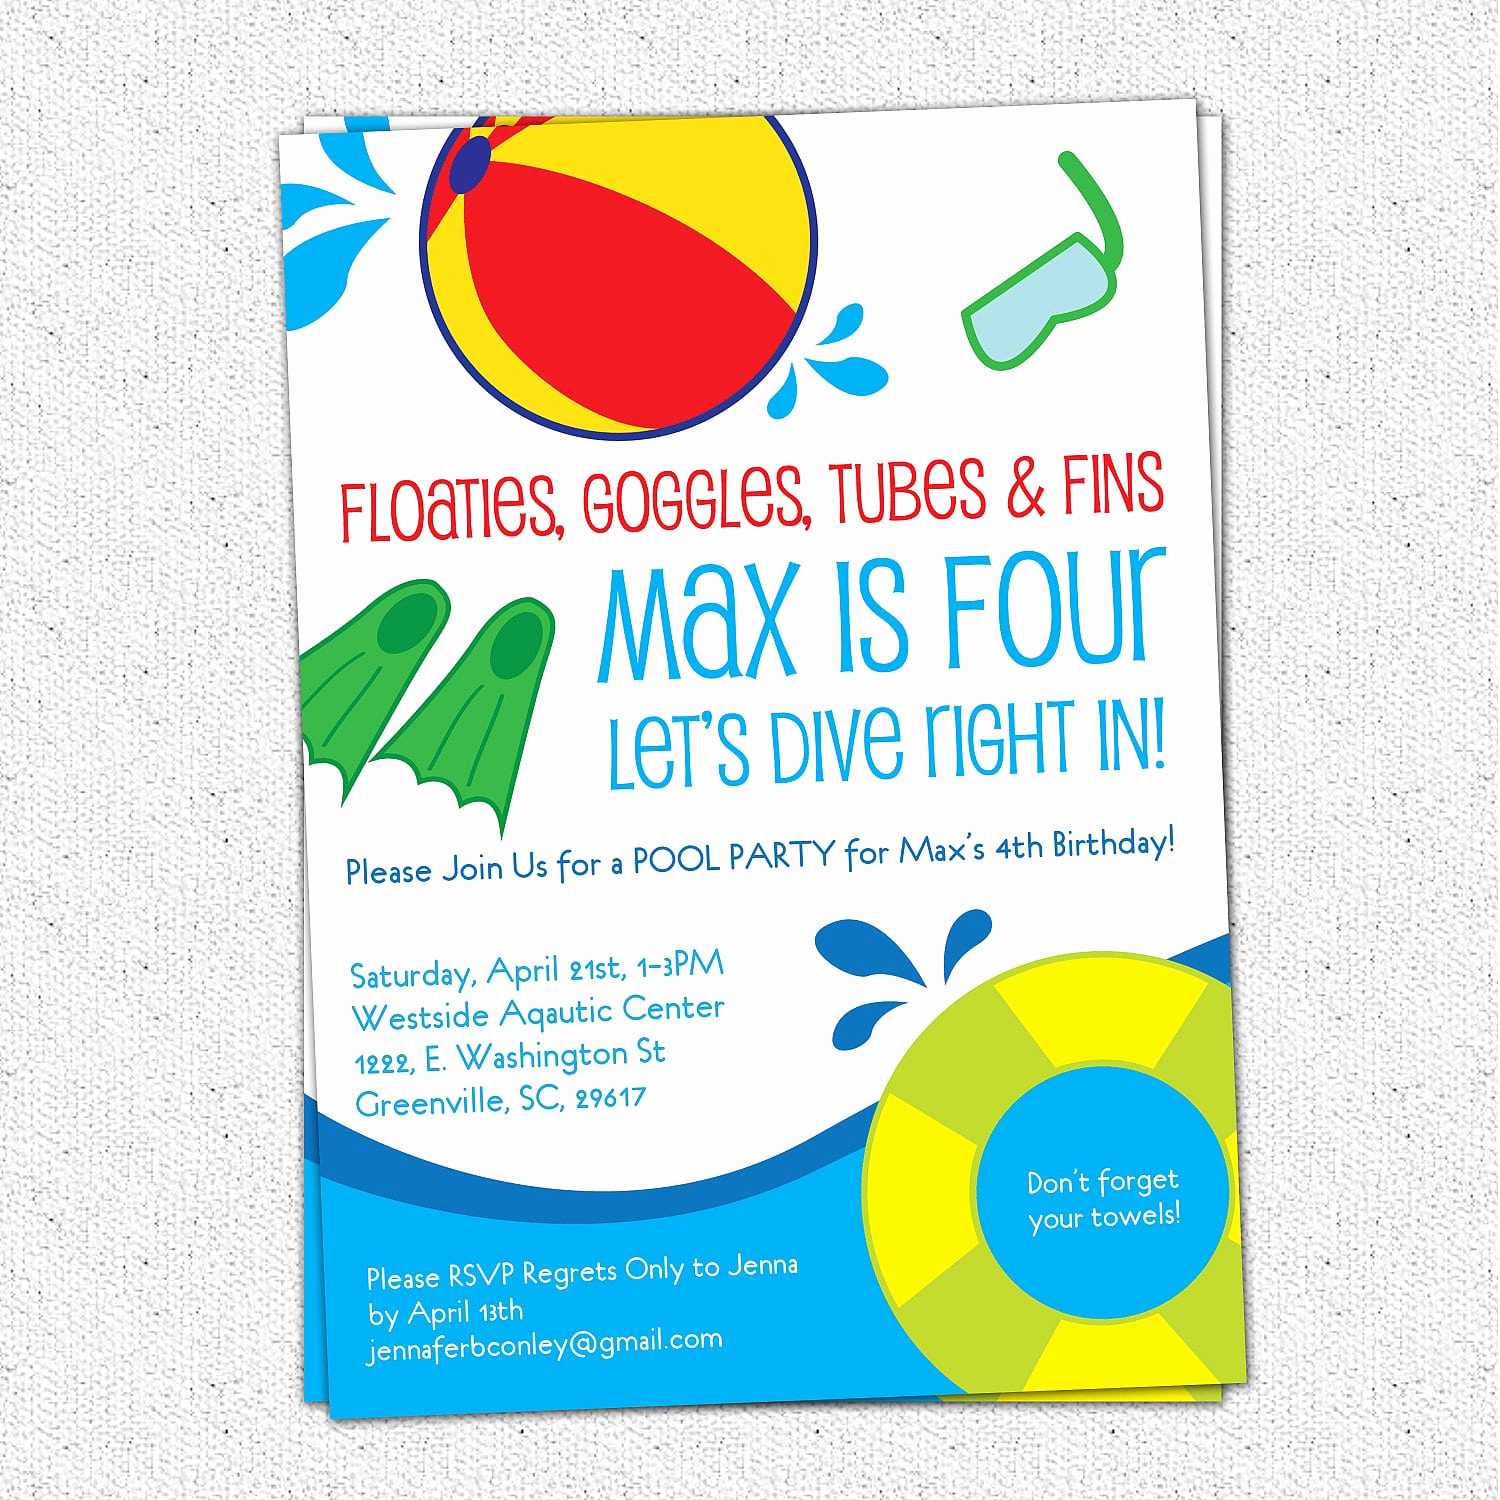 Pool Party Invitation Wording Awesome Printable Kids Pool Party Invitation Wording